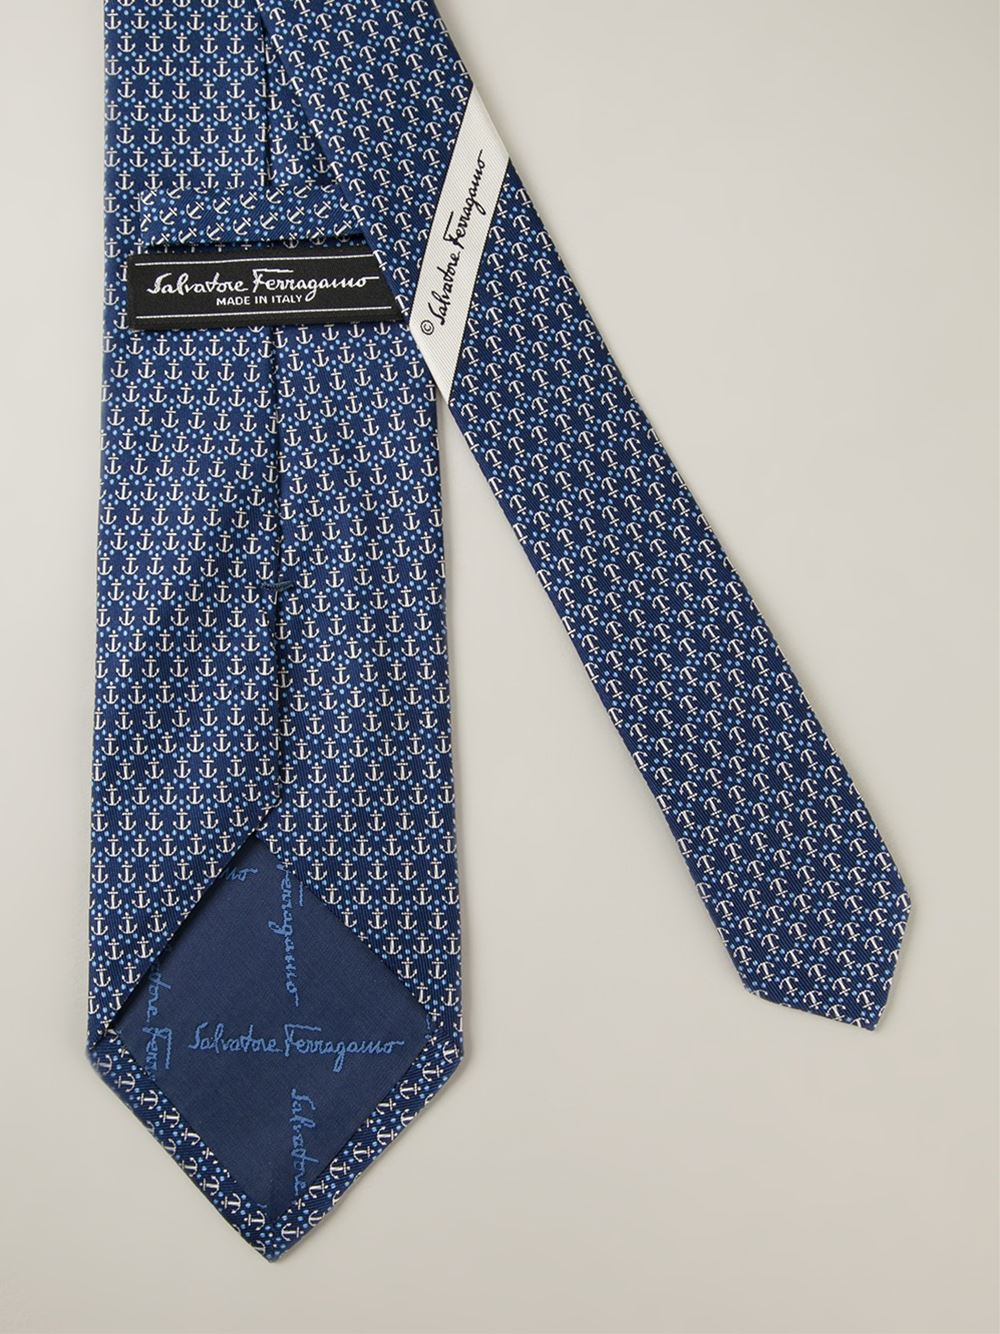 787b6c5acb91 Anchor Ties Related Keywords & Suggestions - Anchor Ties Long Tail ...